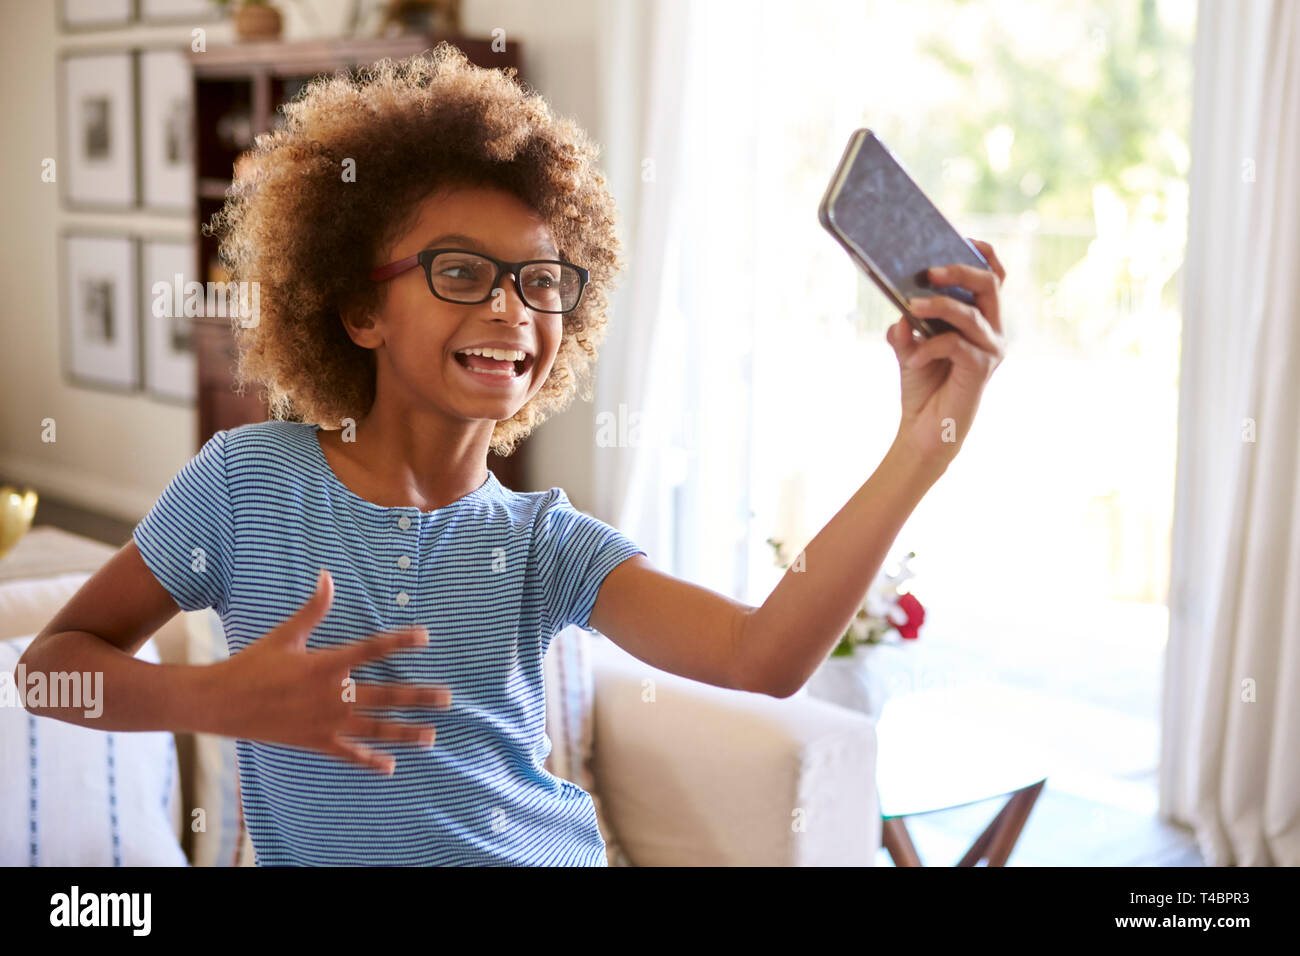 Pre-teen girl filming herself singing using a social media app on her smartphone, close up Stock Photo